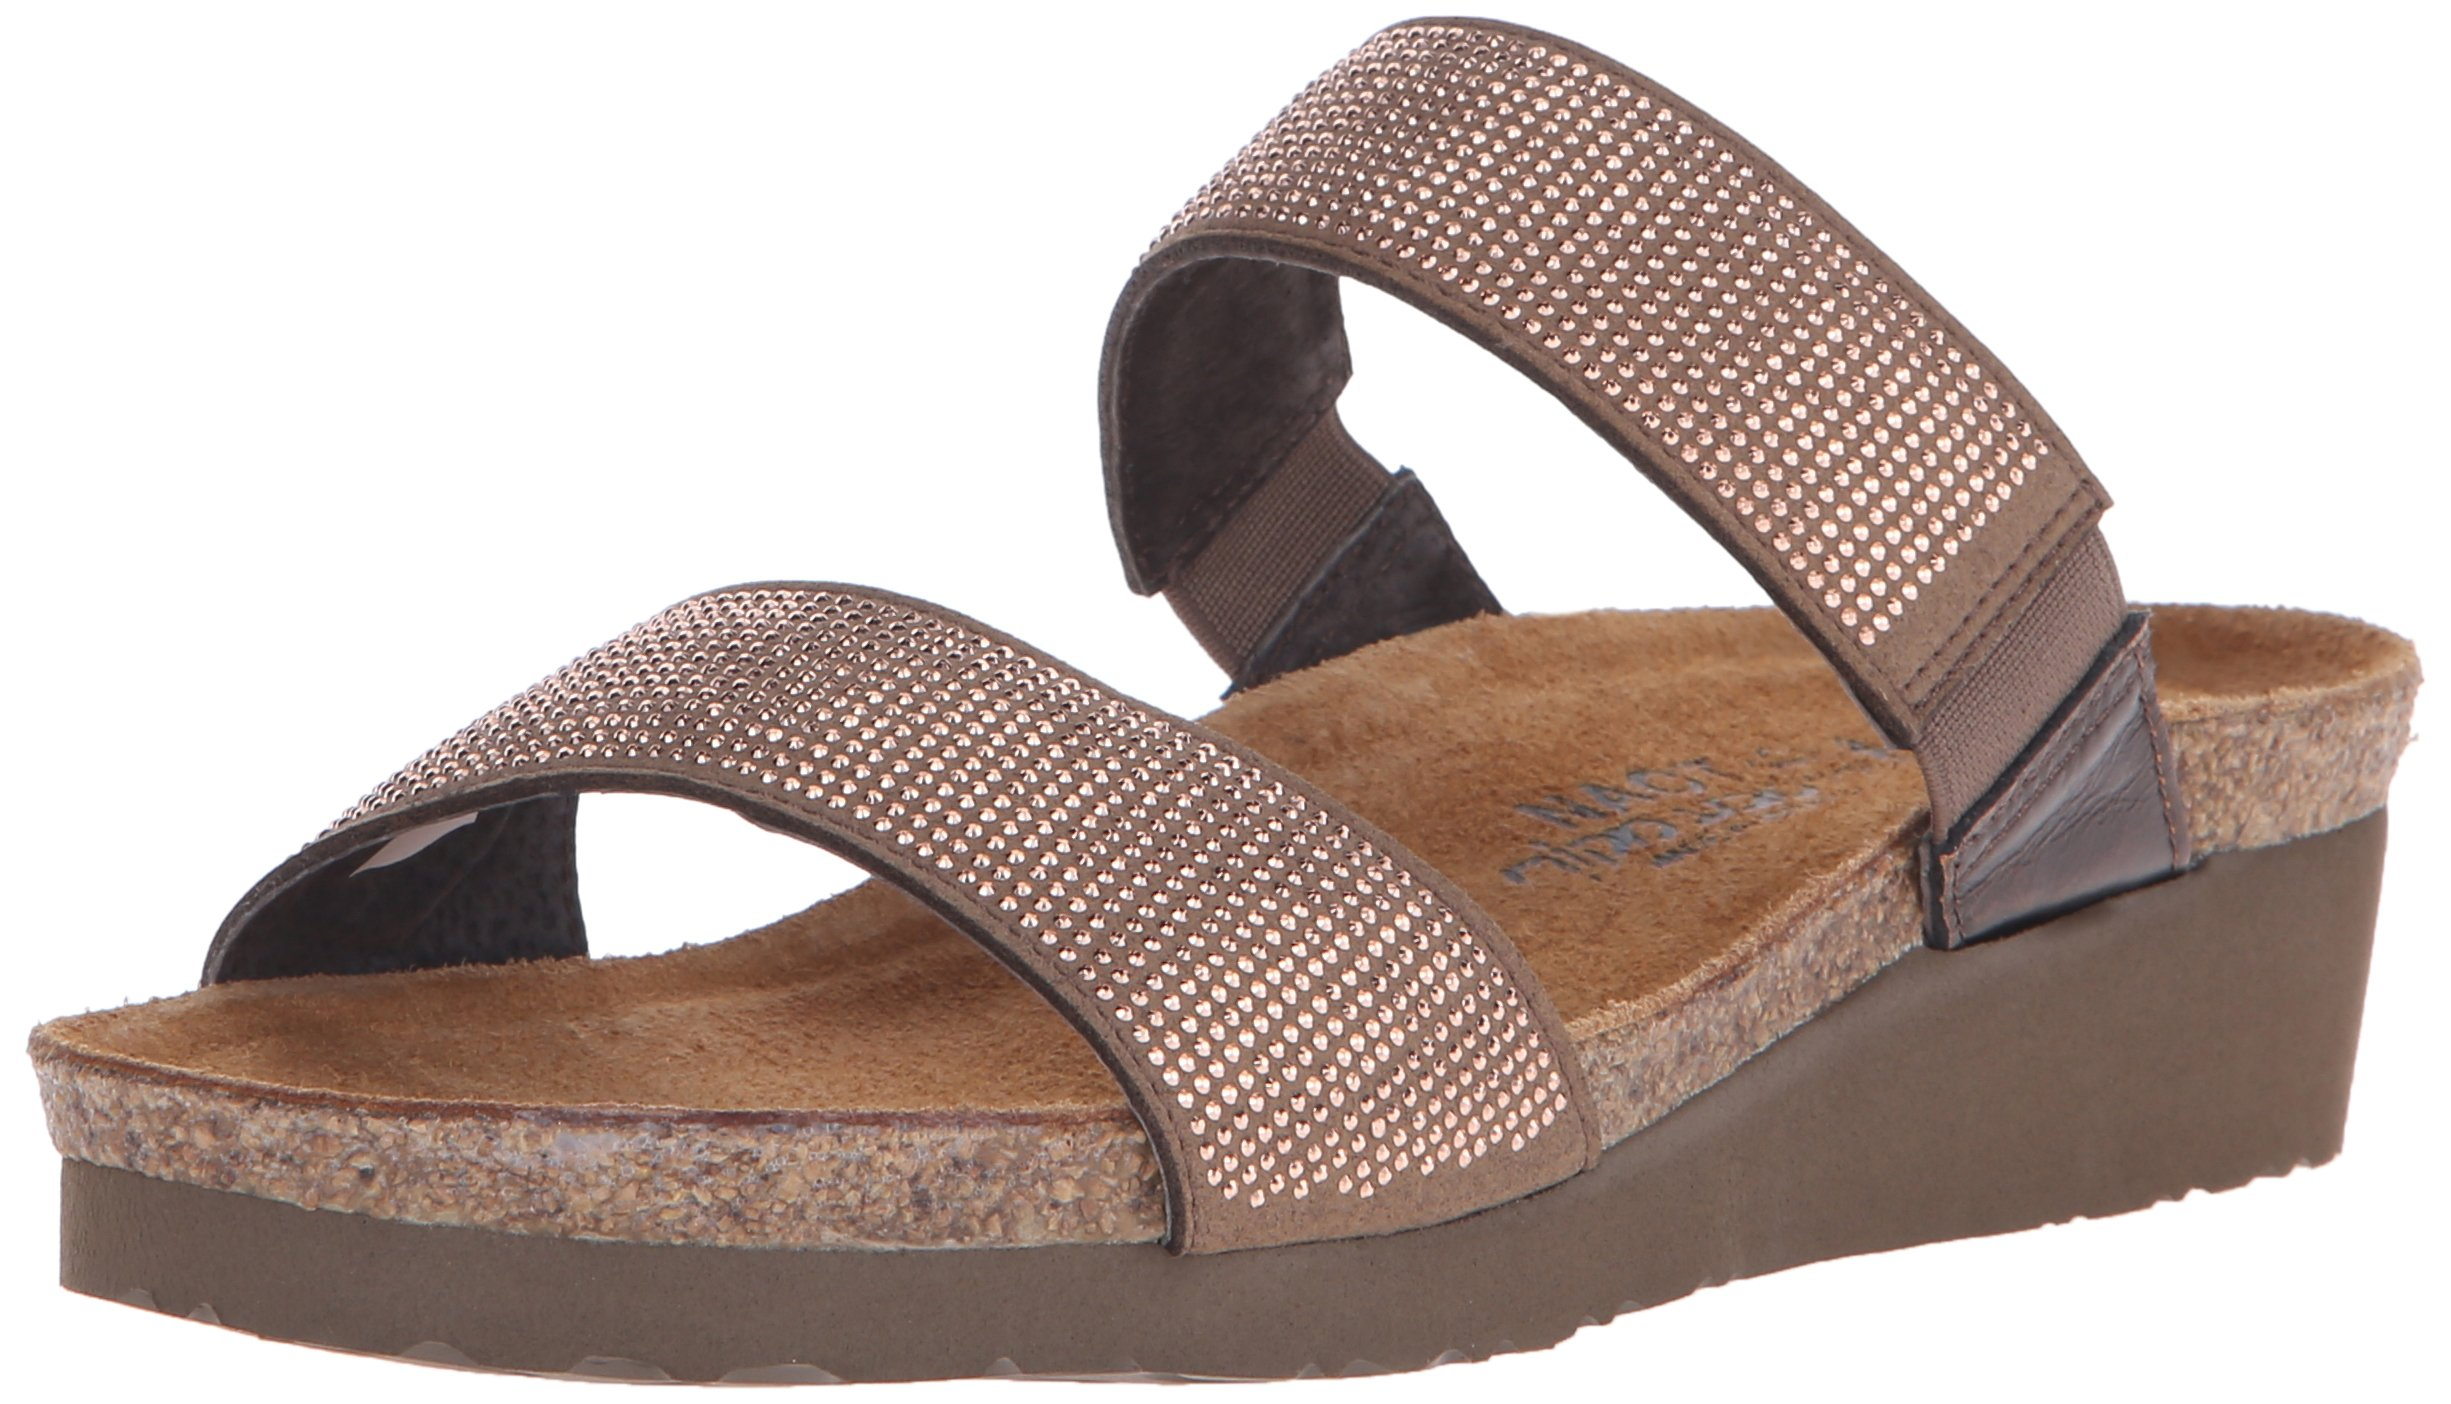 Naot Women's Bianca Wedge Slide Sandal, Copper, 40 EU/9 M US